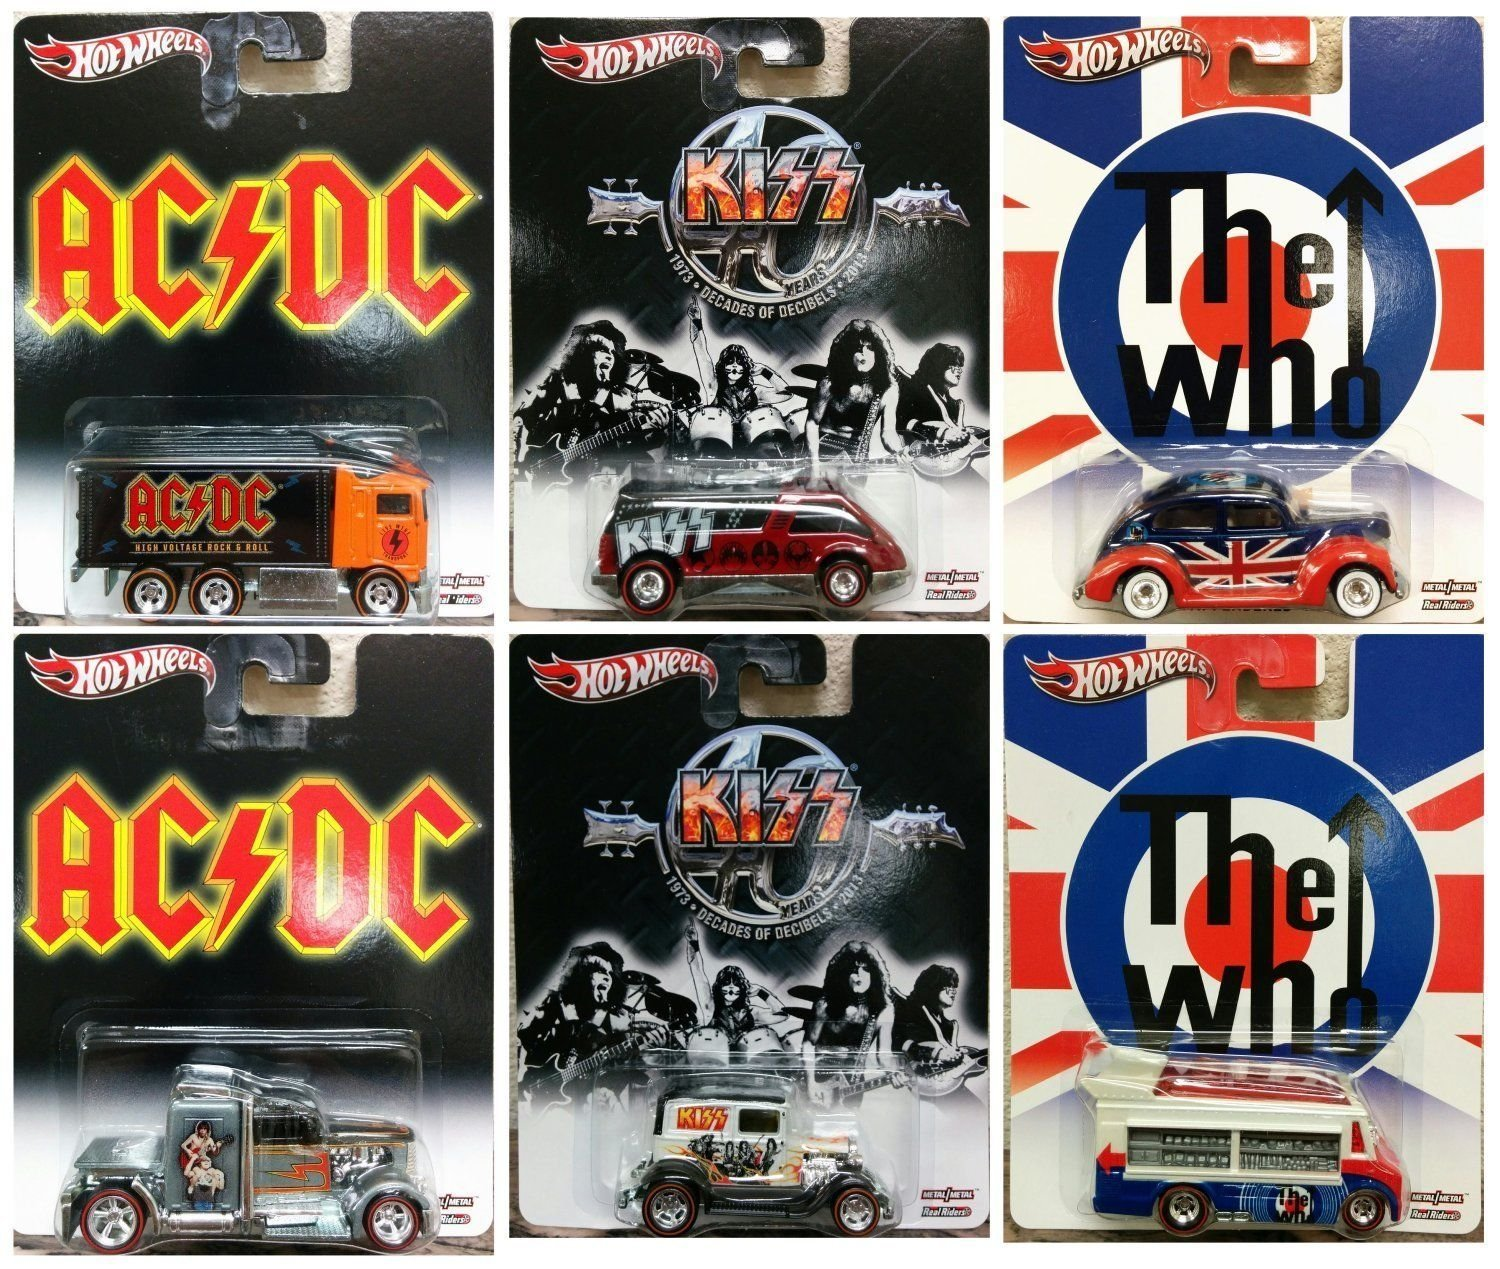 Hot Wheels 1/64 Set Of 6 2013 Pop Culture Kiss AC/DC The Who Case F X8308--956F ~ Prime shipping